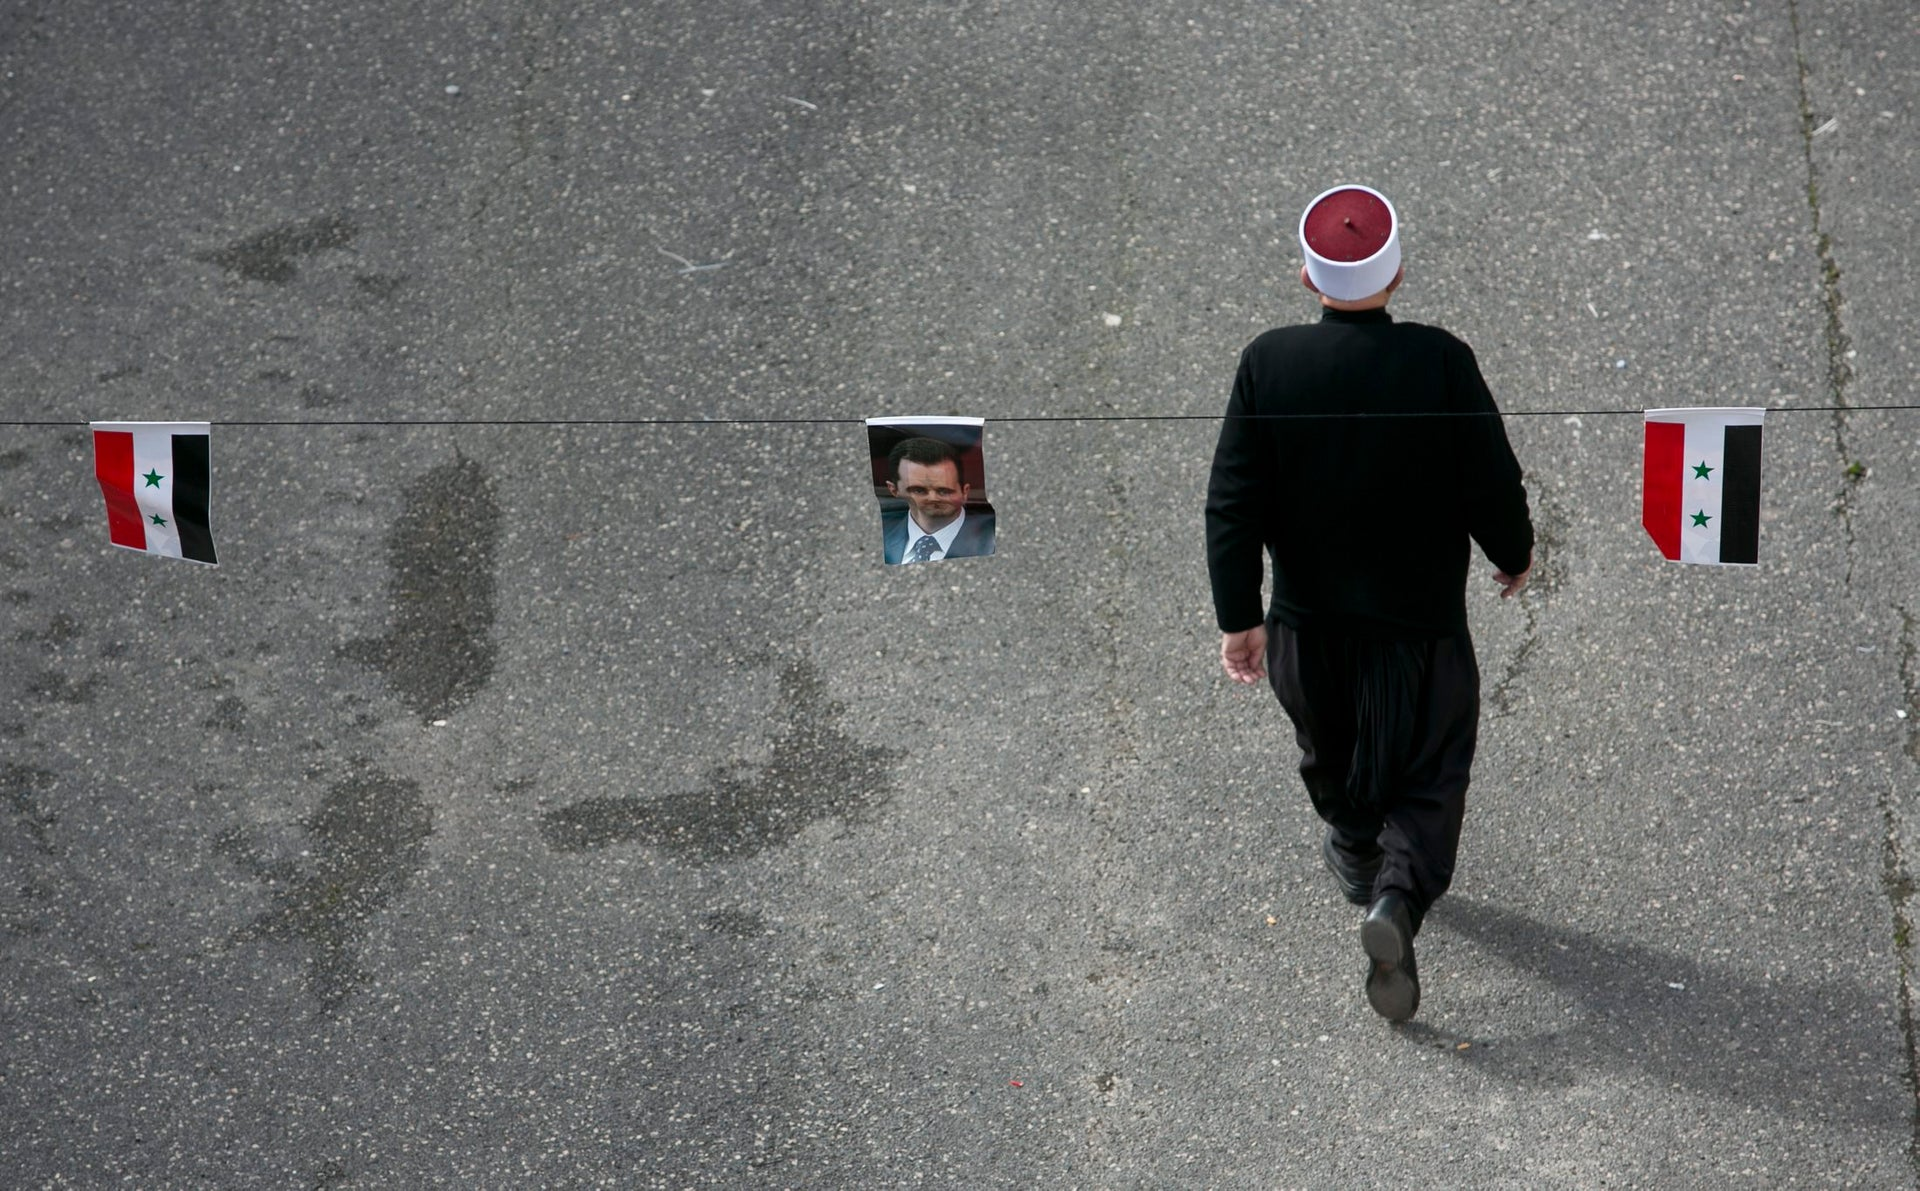 An Israeli Druze walks past Syrian flags and a picture of Bashar Assad at a protest in solidarity with the Syrian Druze community, February 14, 2016.